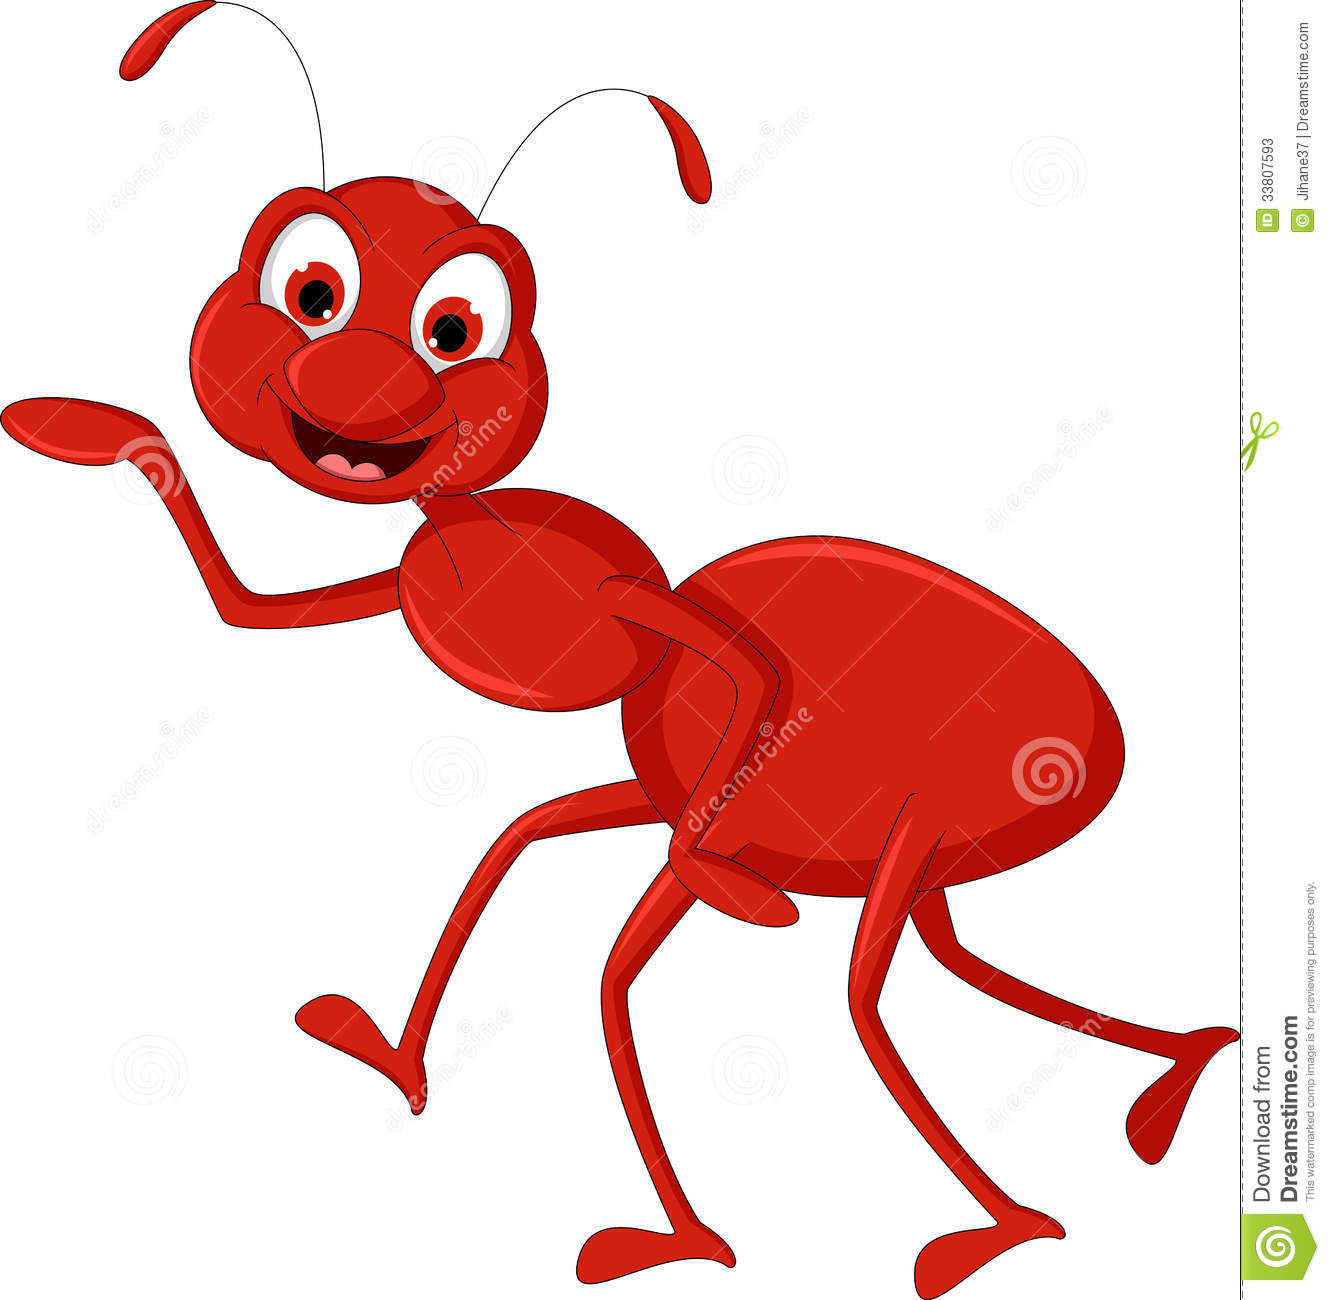 Red Ant Cartoon Presenting For You Design Stock Photos   Image